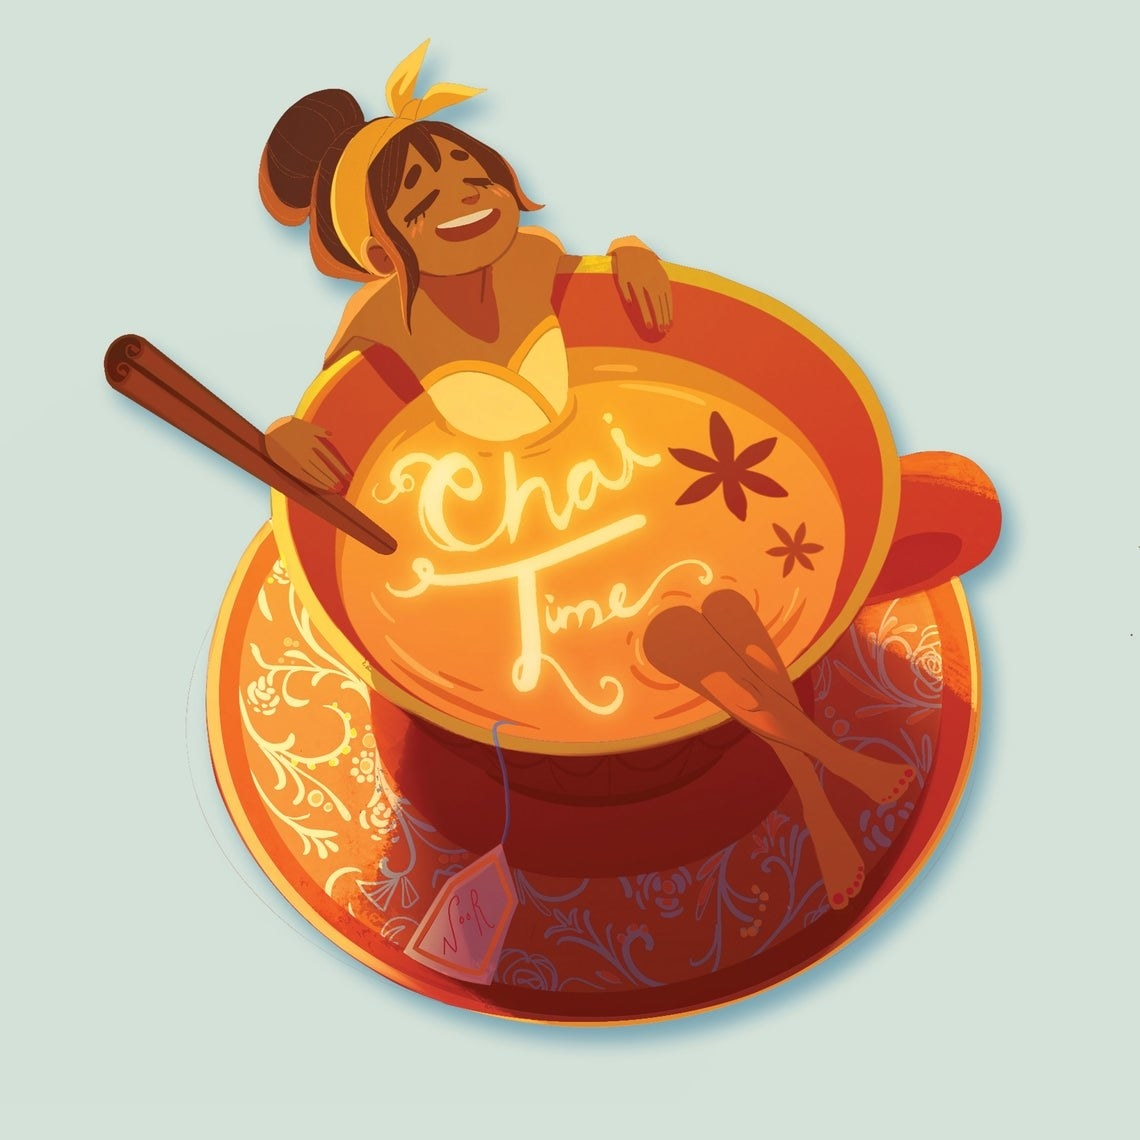 Sticker of person bathing in a teacup full of chai